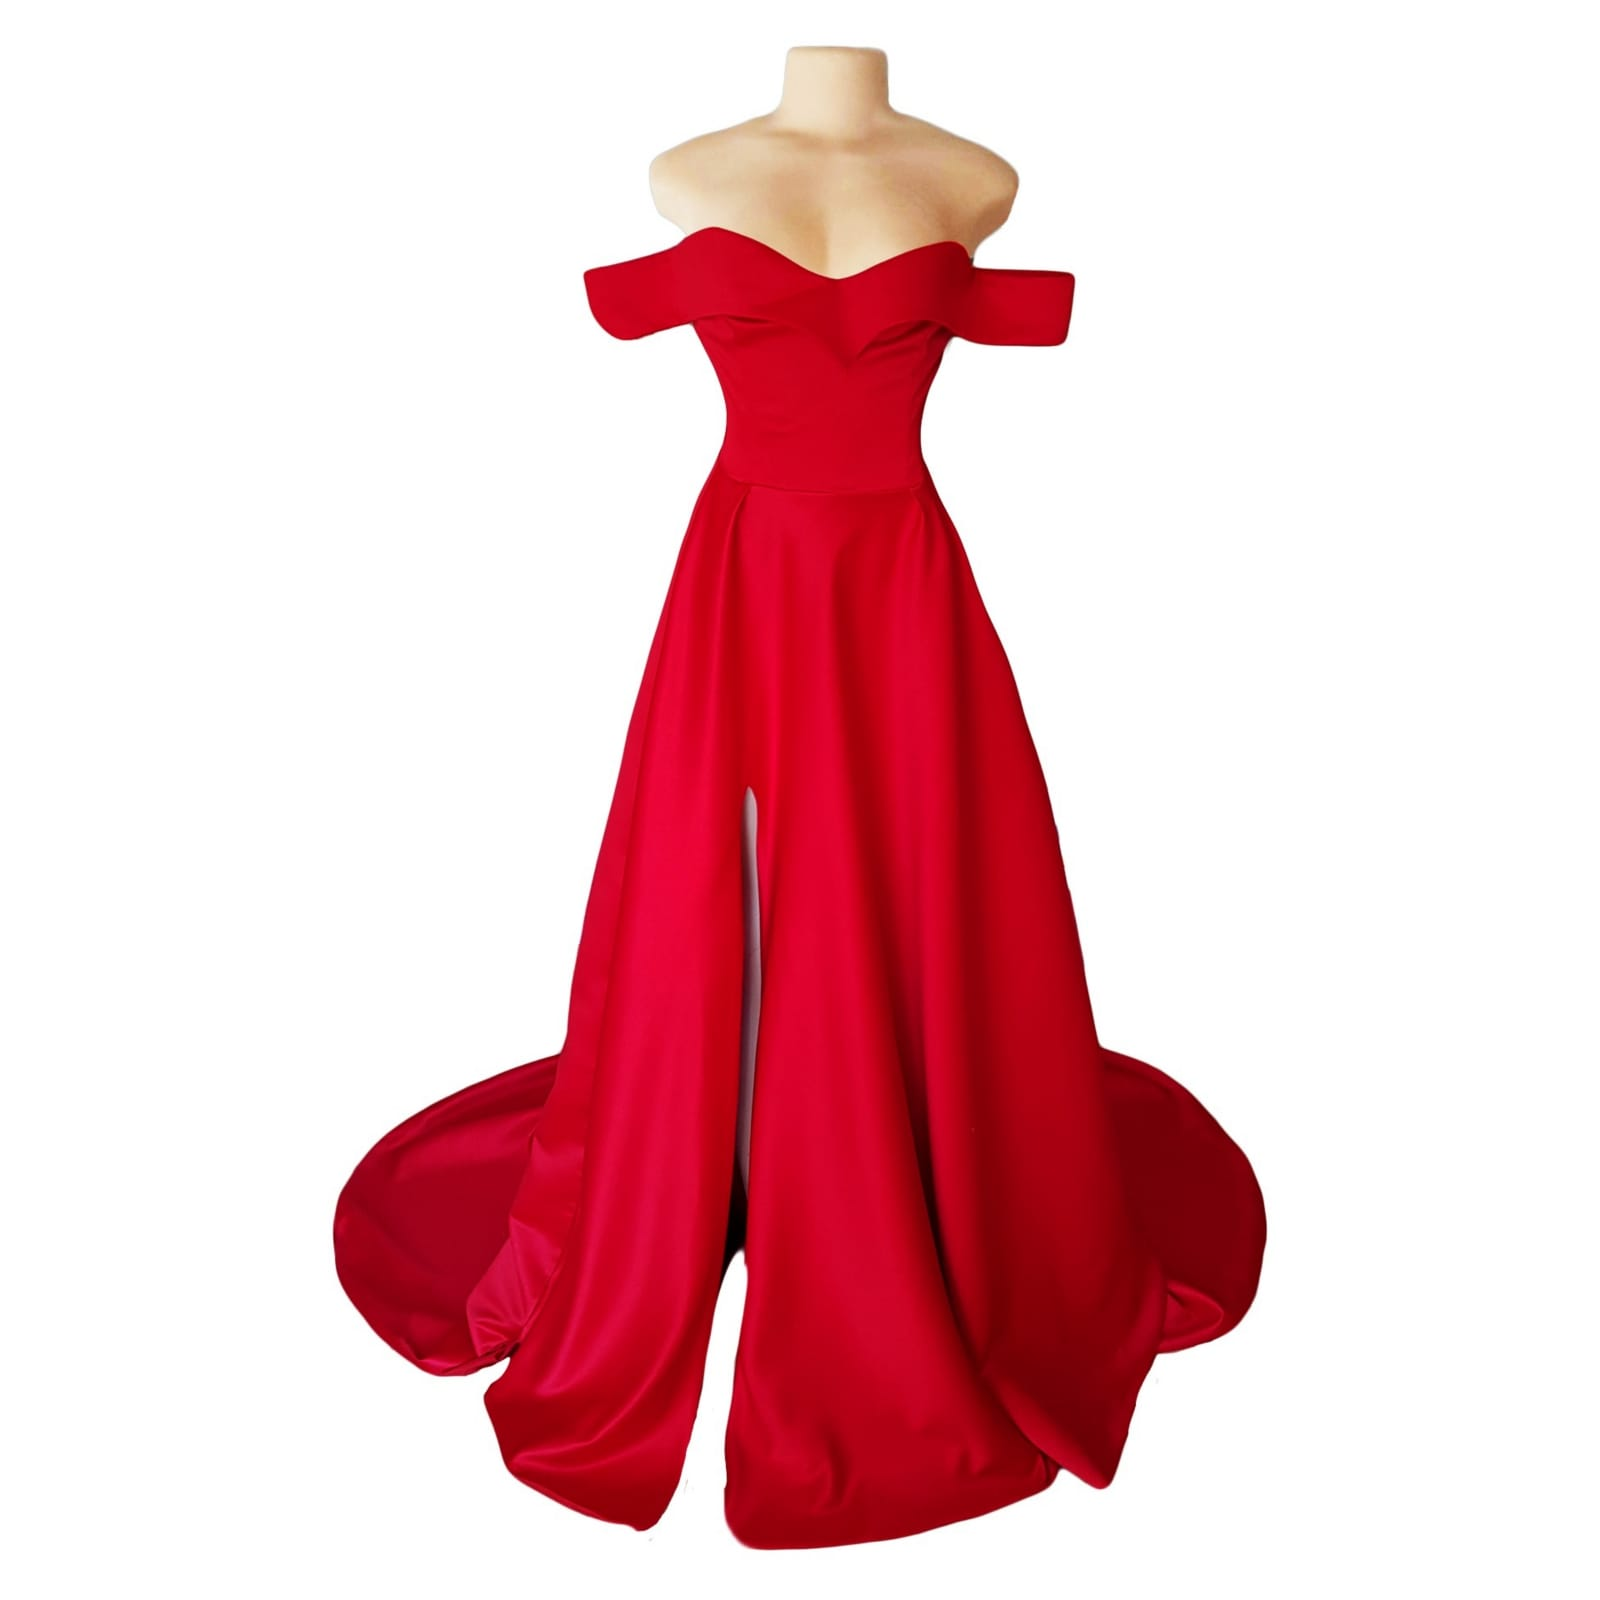 Red off shoulder flowy long prom dress 5 red off shoulder flowy long prom dress with a slit and a train